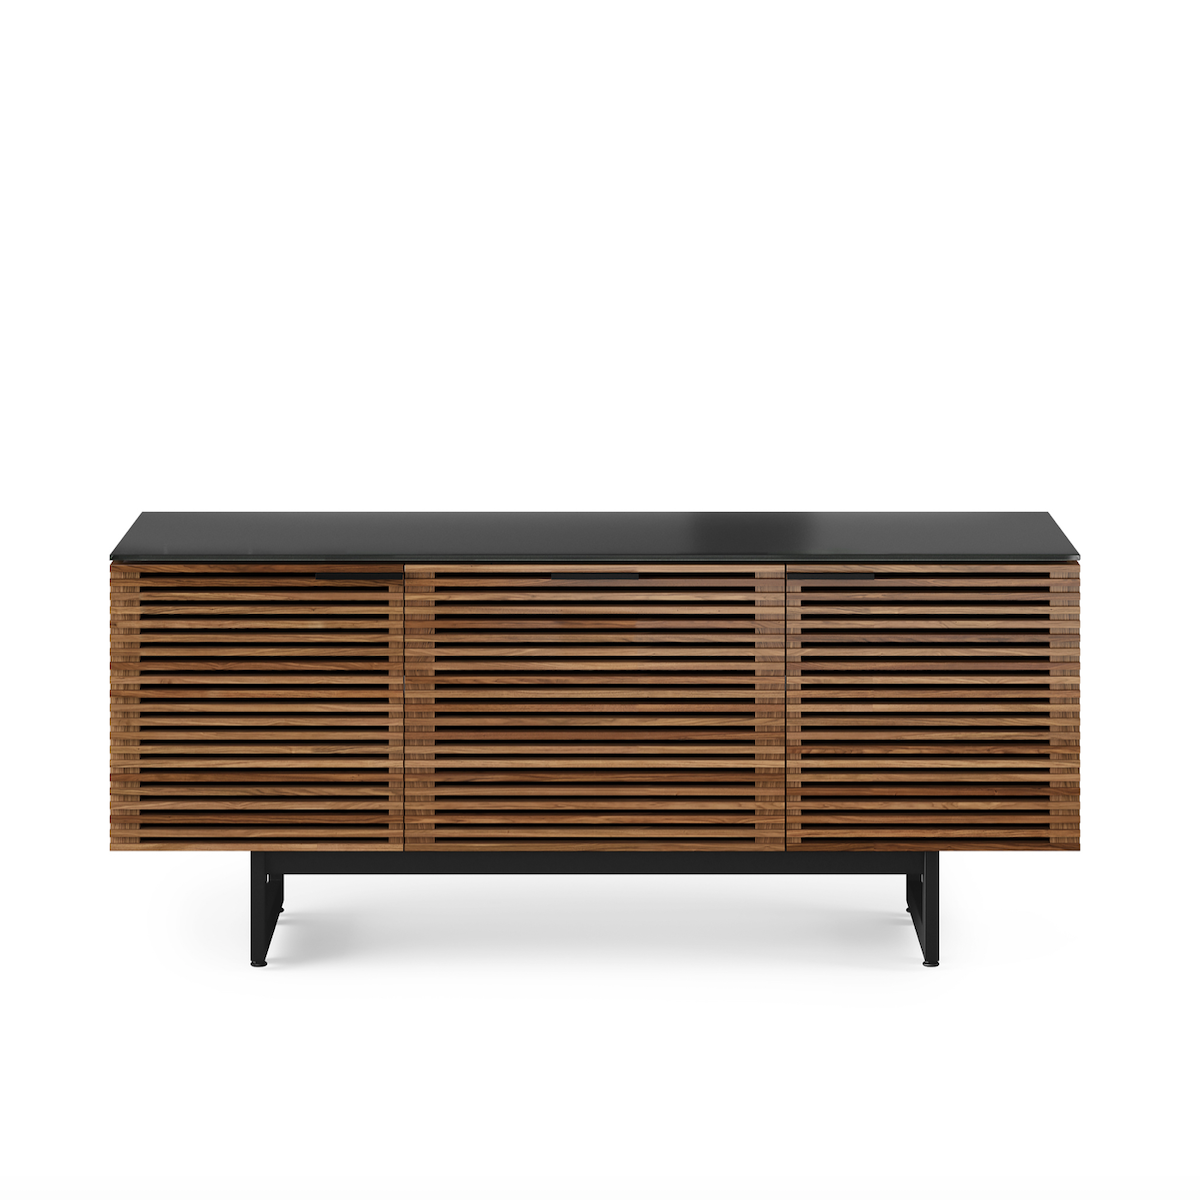 Corridor 8177 Entertainment Cabinet | Natural Walnut